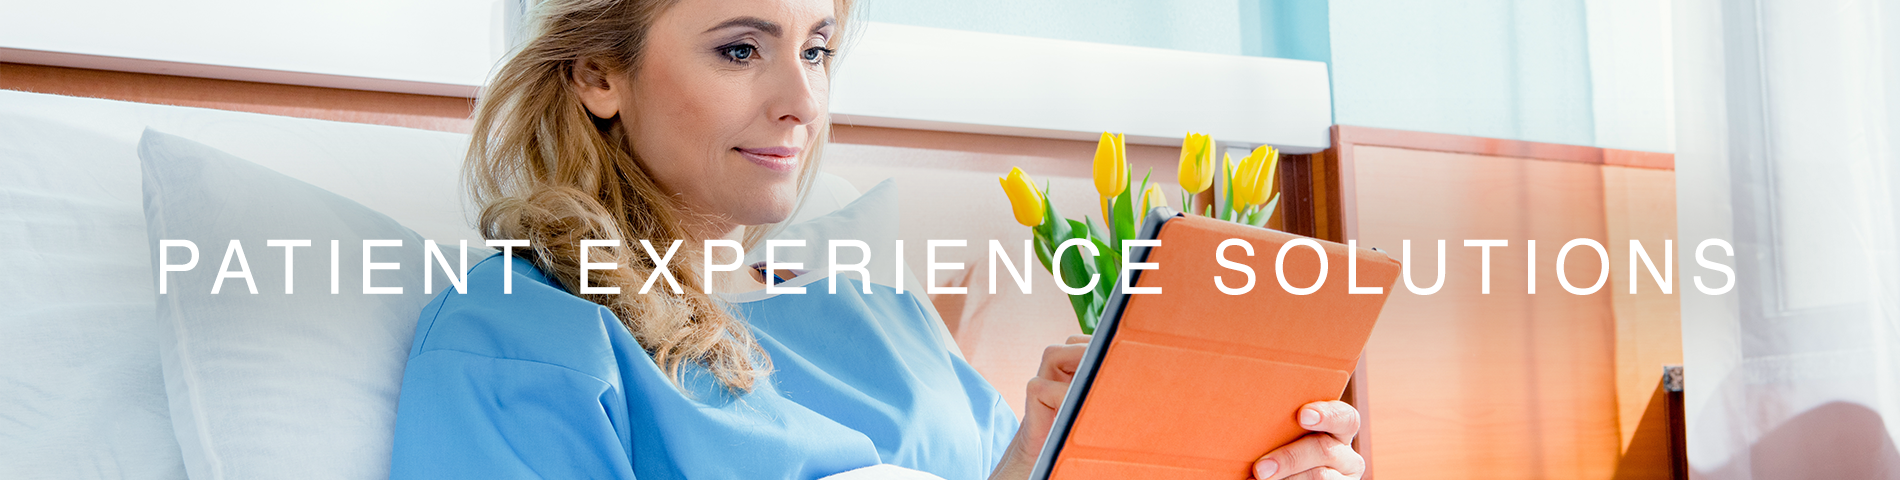 Patient Experience Solutions